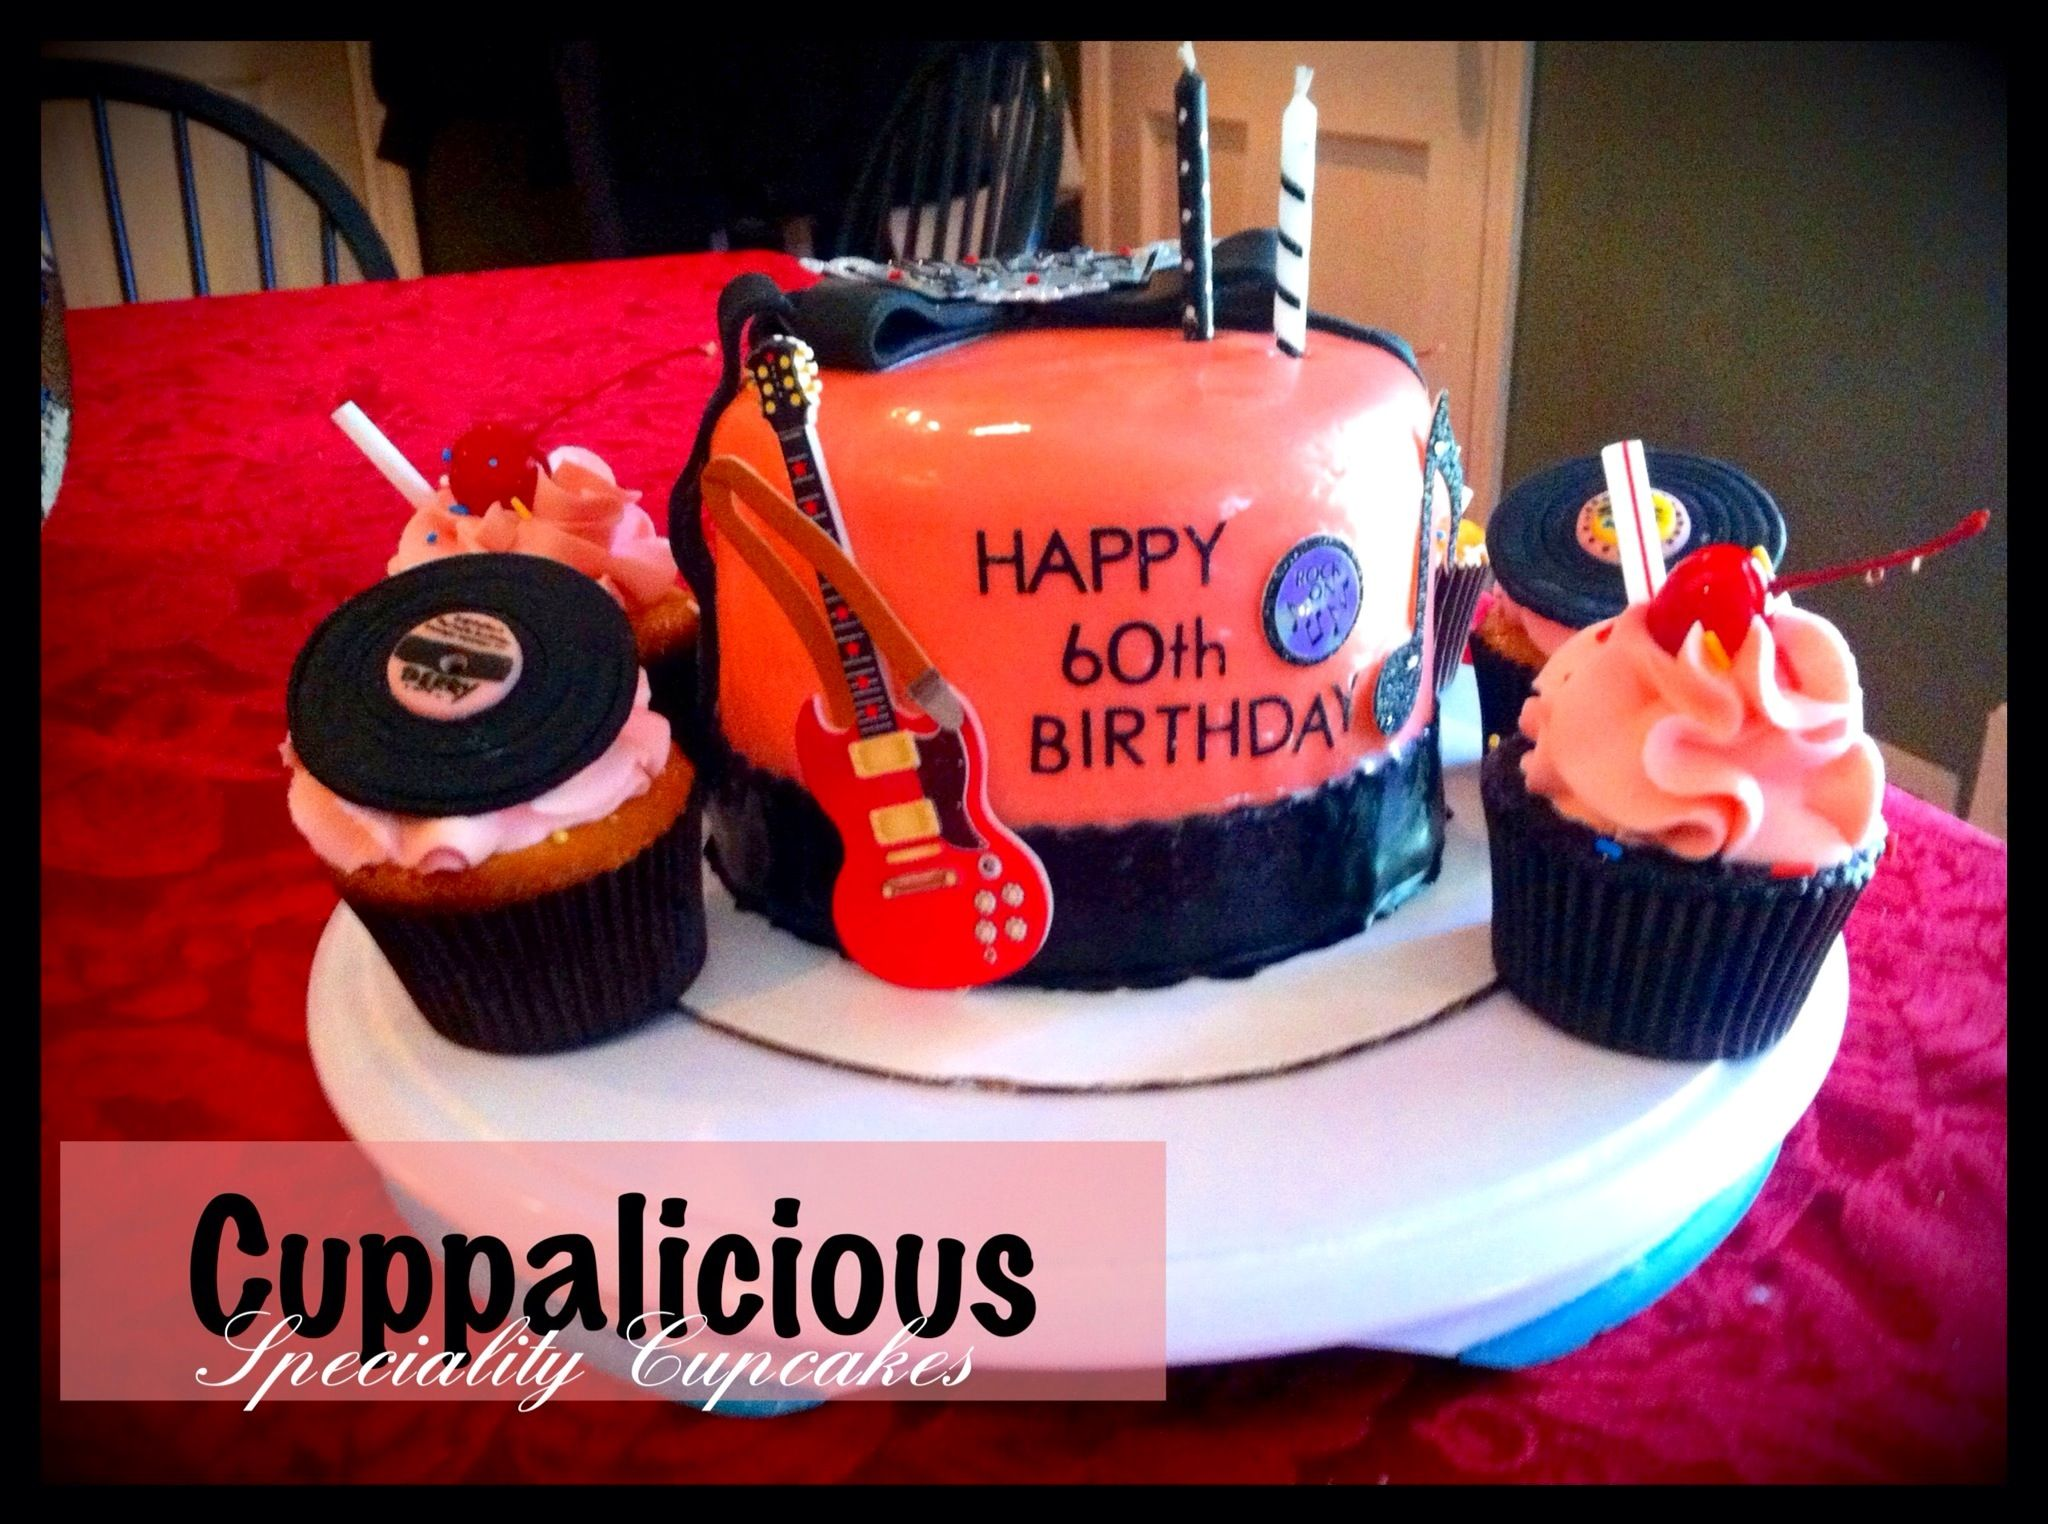 1950s Themed Cake And Specialty Cupcakes By Cuppalicious Atlanta